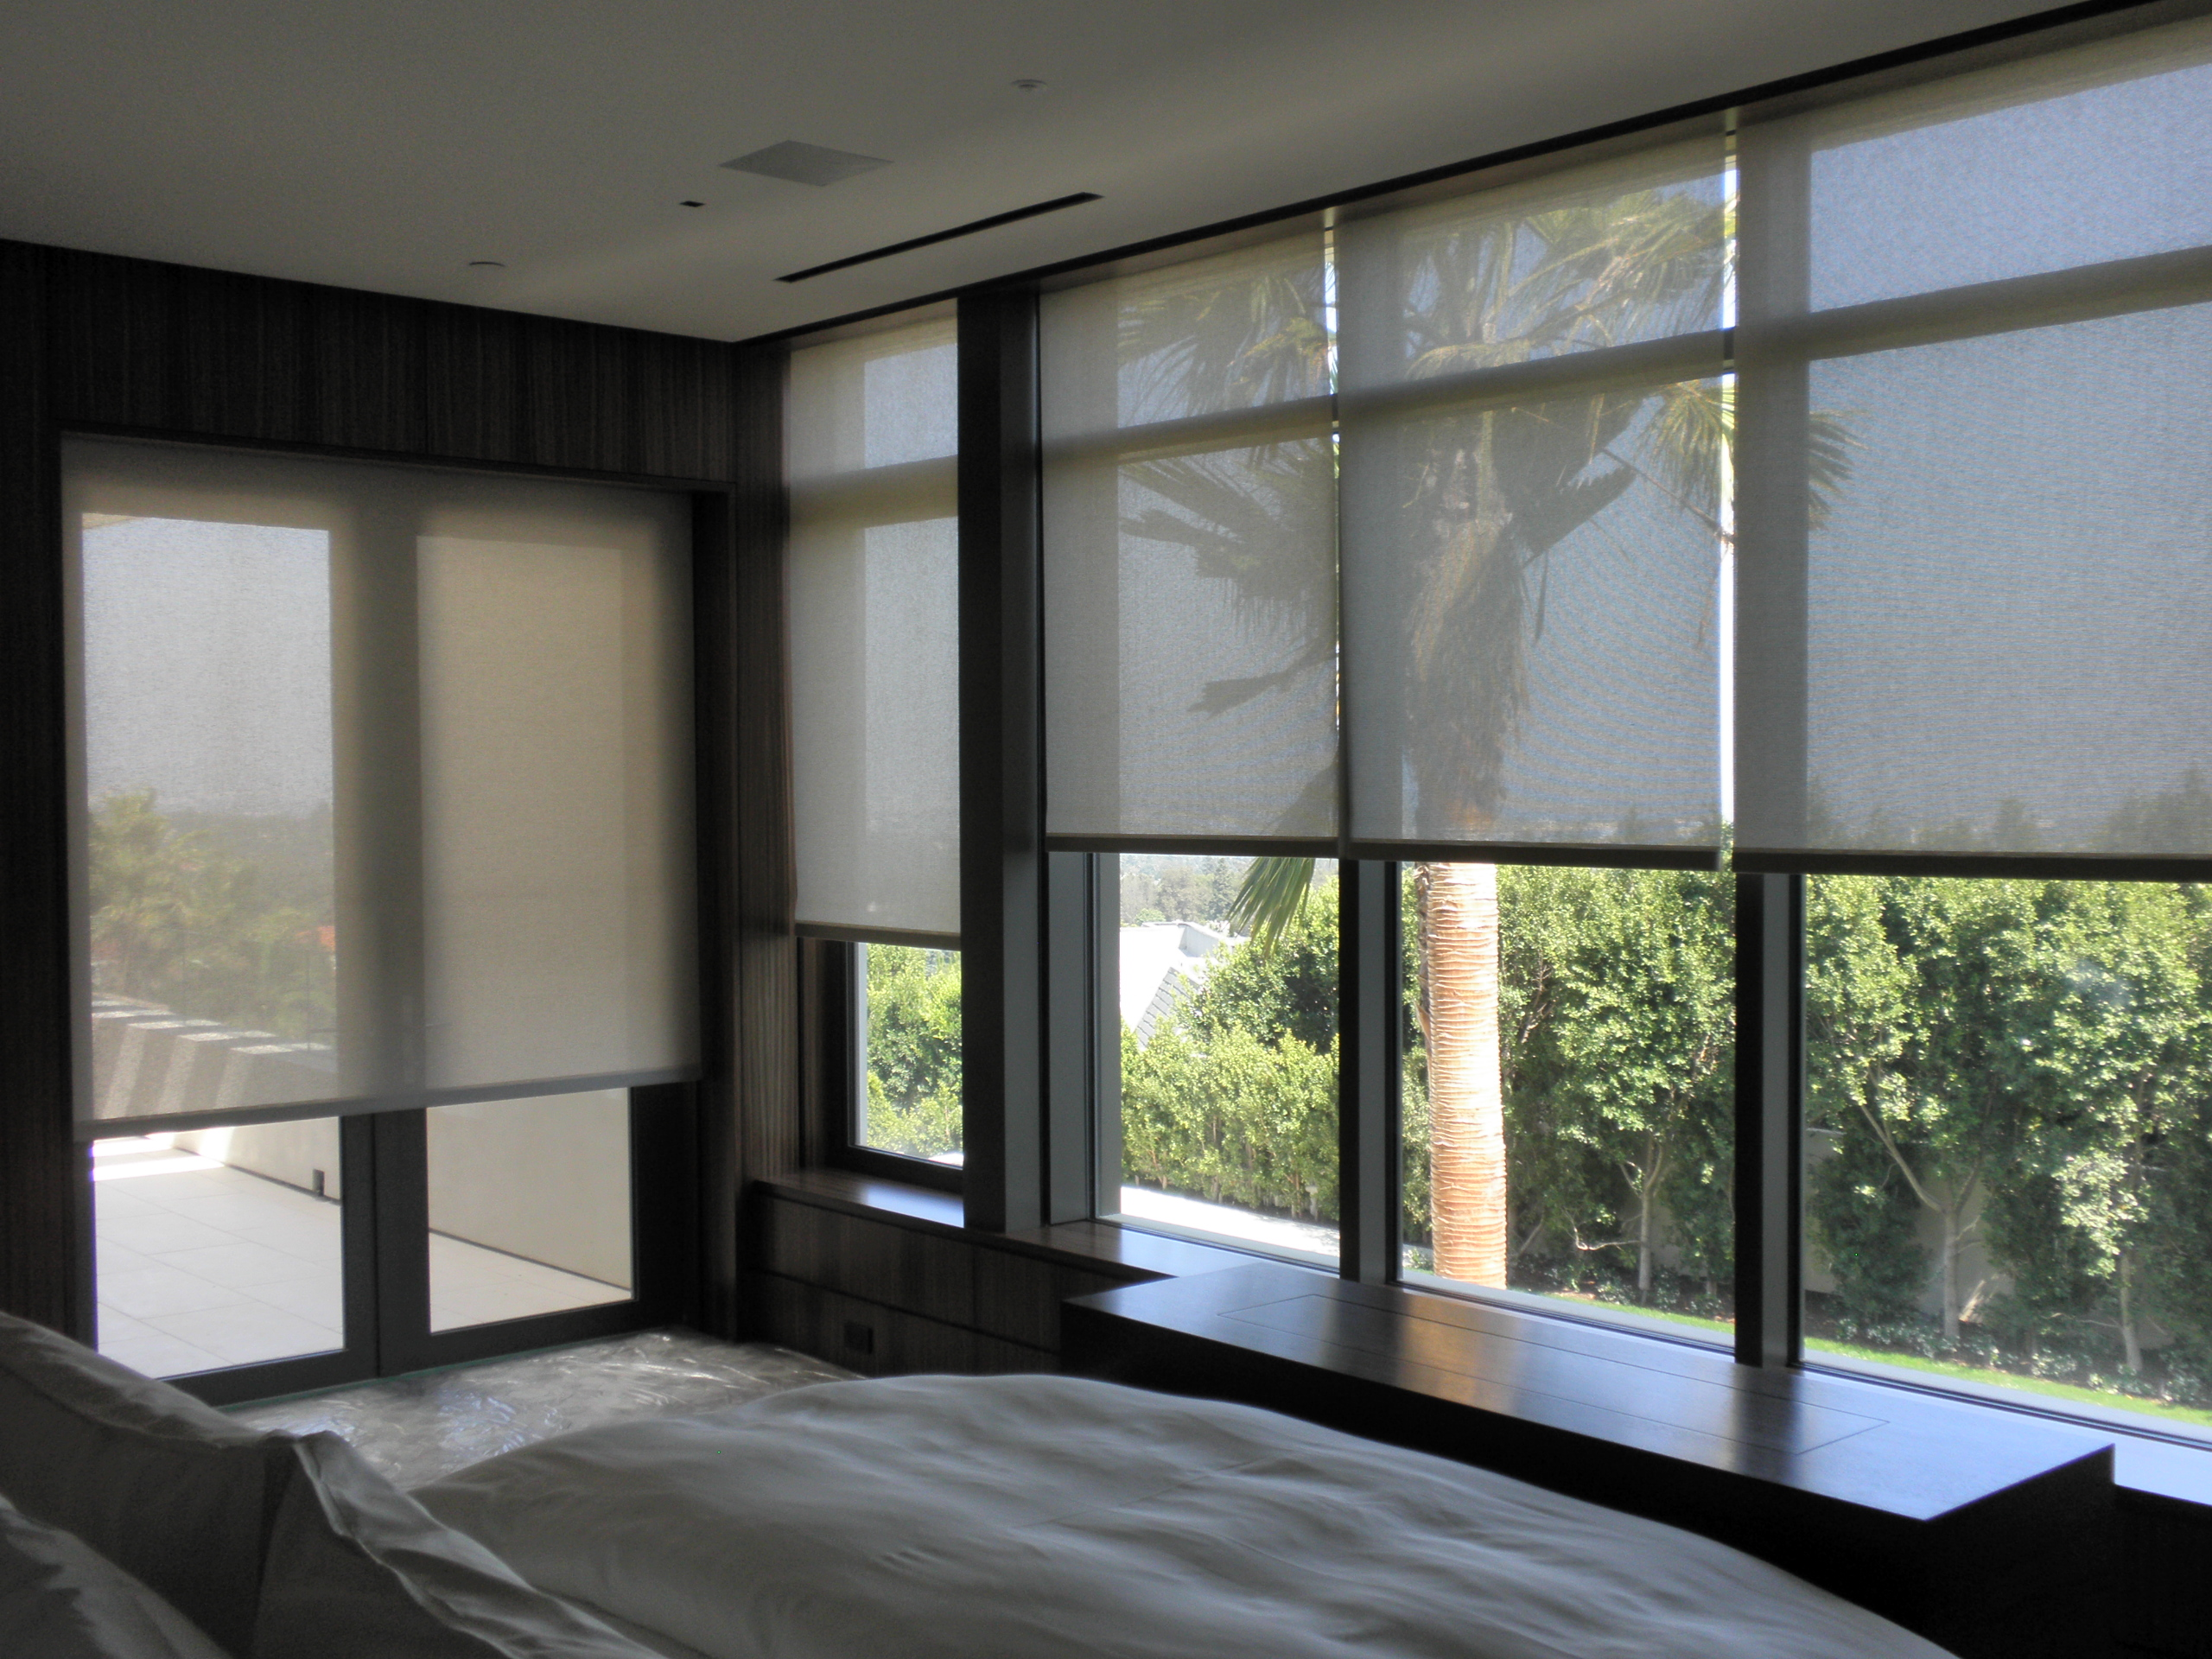 Effective shading solutions motorized shading advantages for Motorized blinds shades